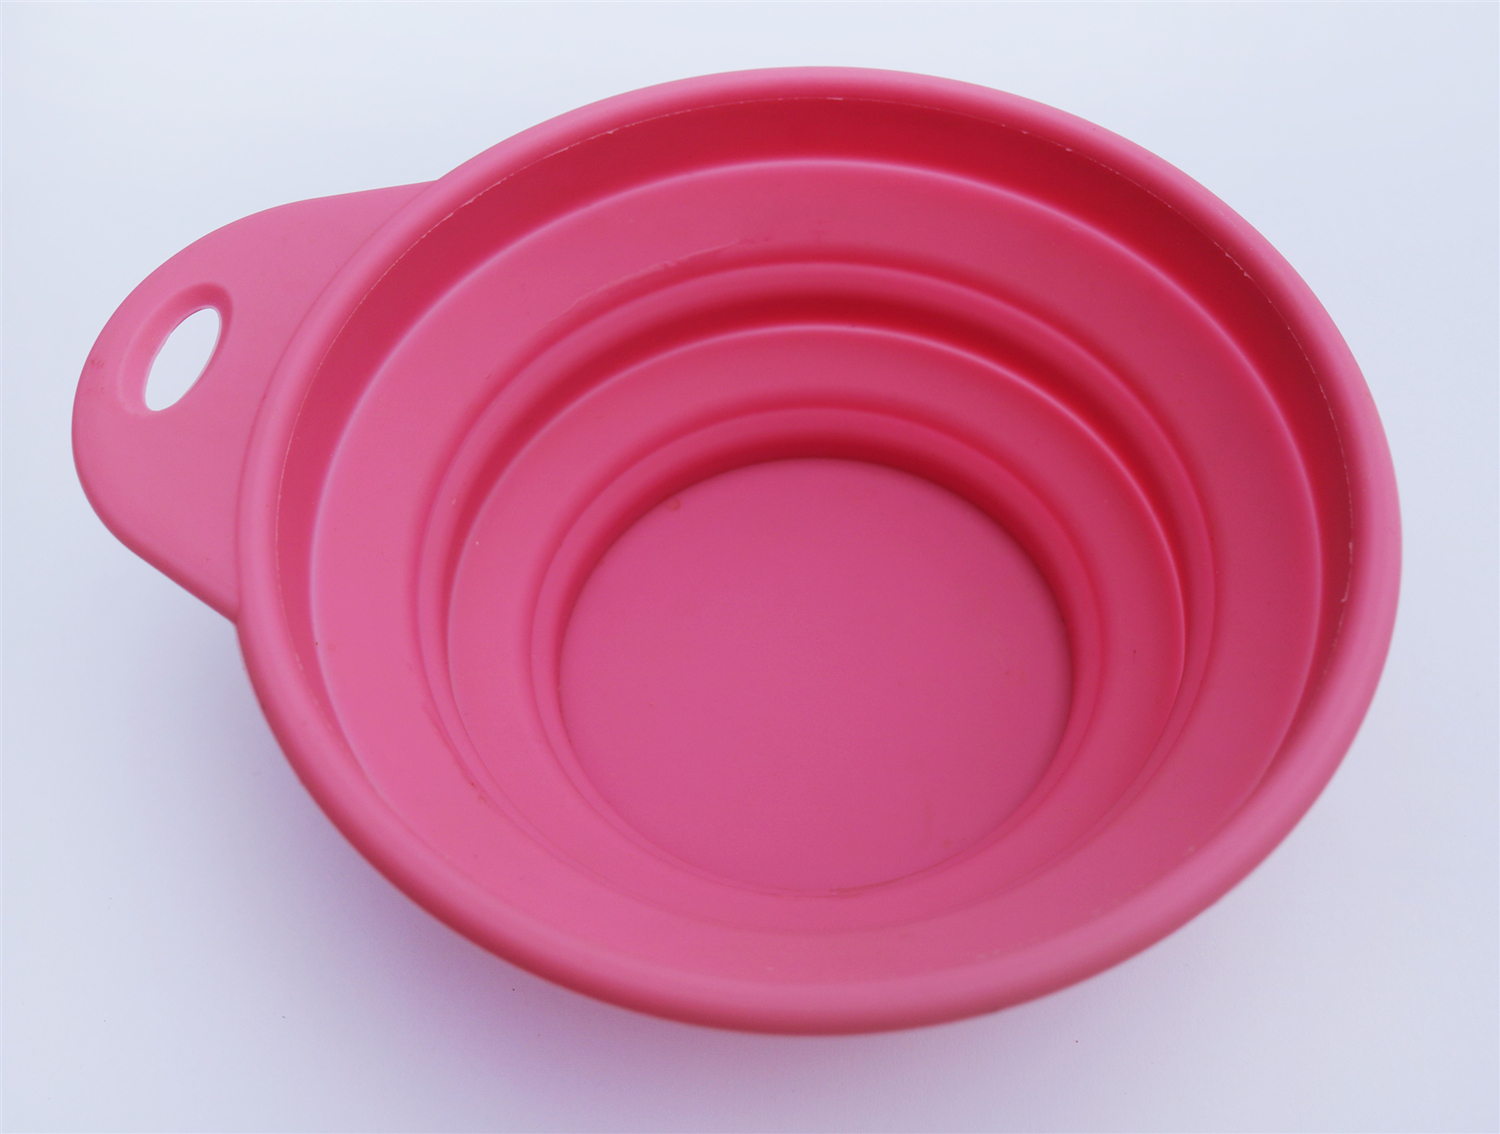 Silicone Bowl with Lid 500ML 1000ML for Outdoor Camping, Travel, Hiking and Indoor Home Kitchen, Off